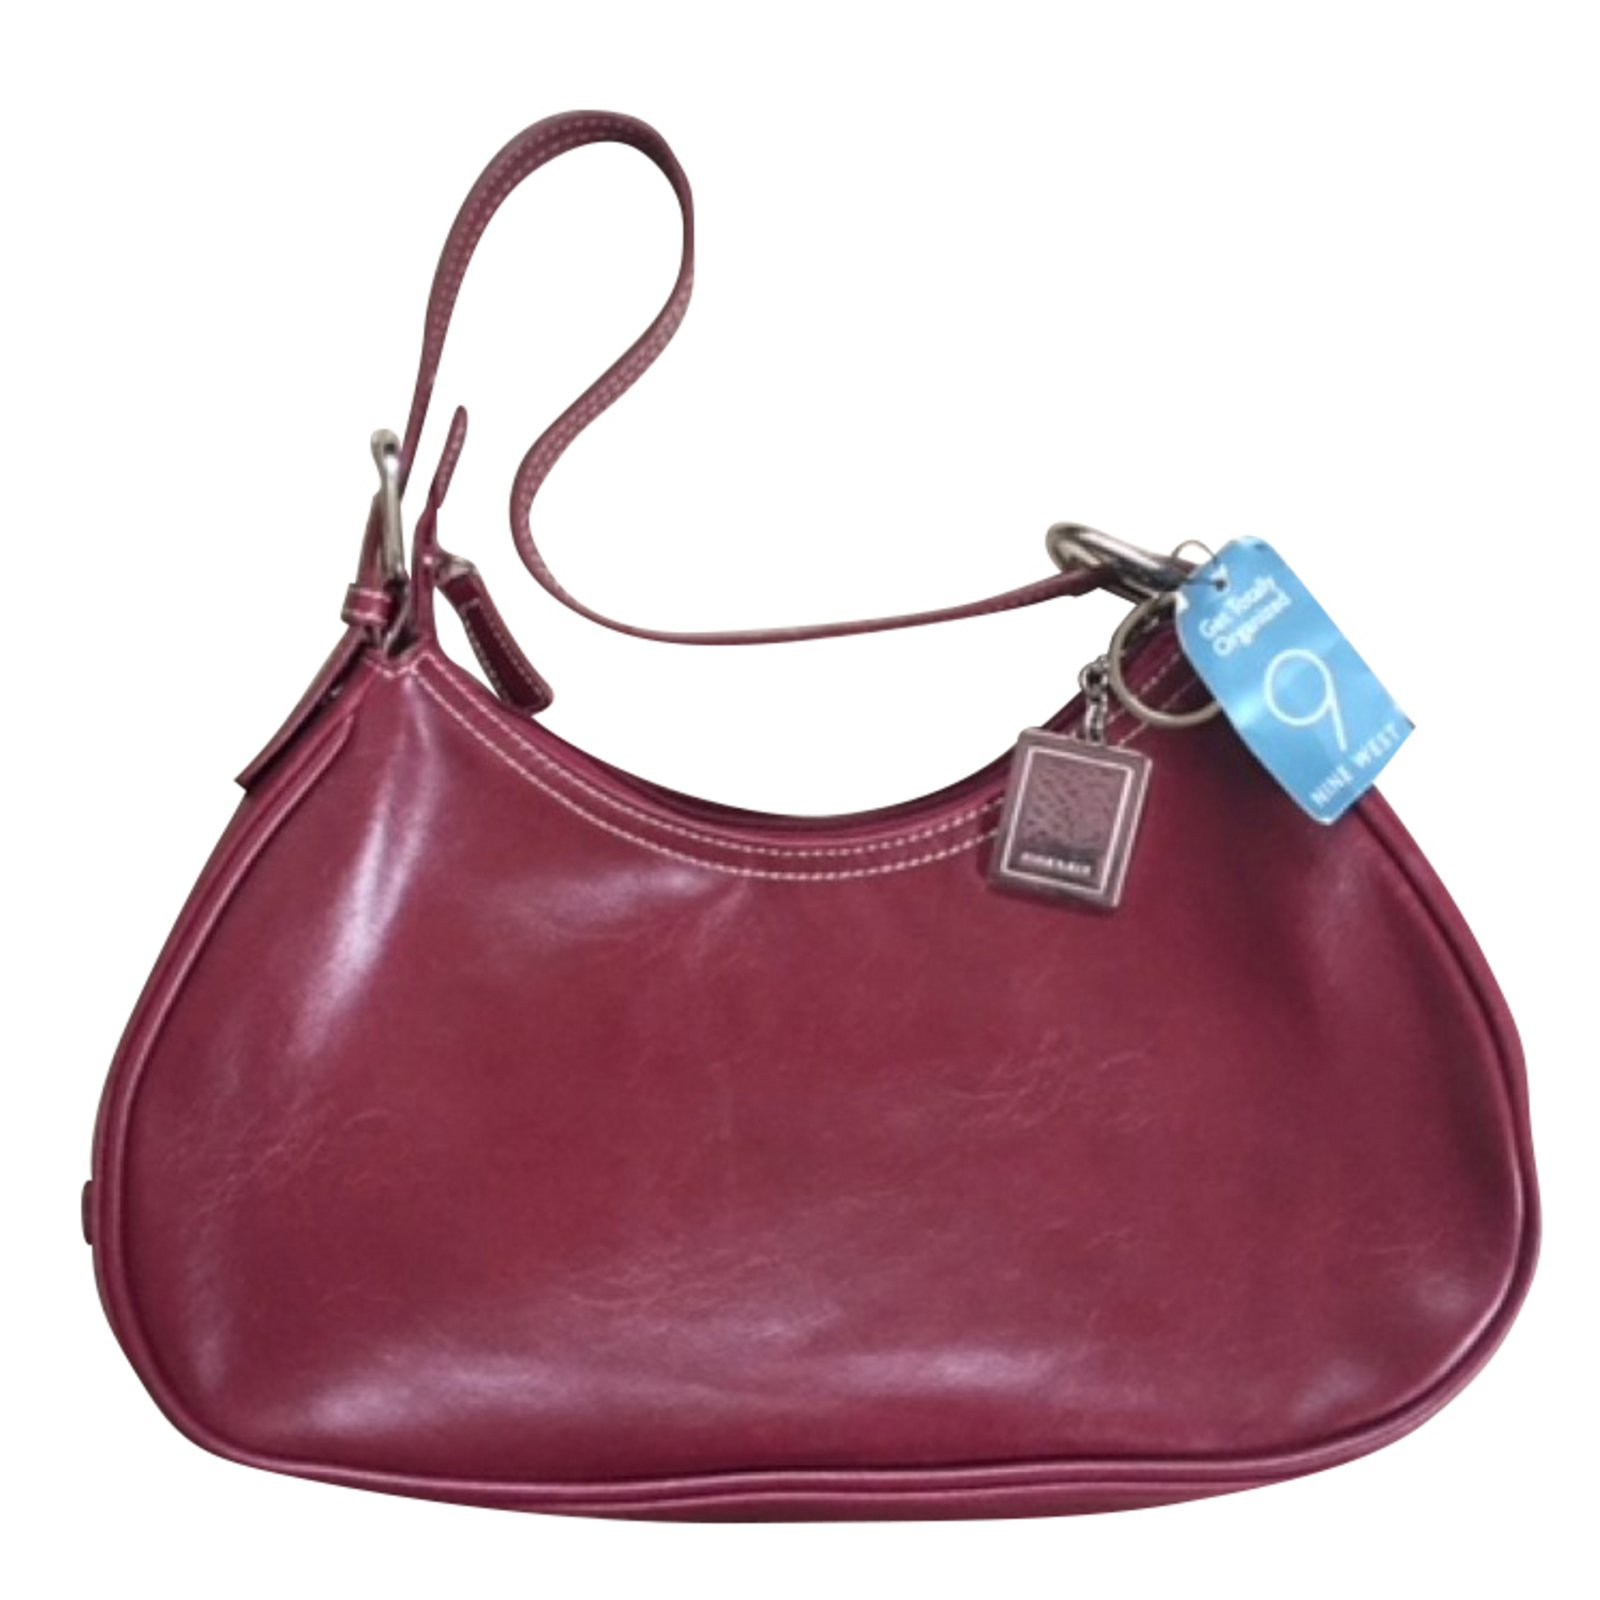 Nine West Handbags Leather Red Ref 51656